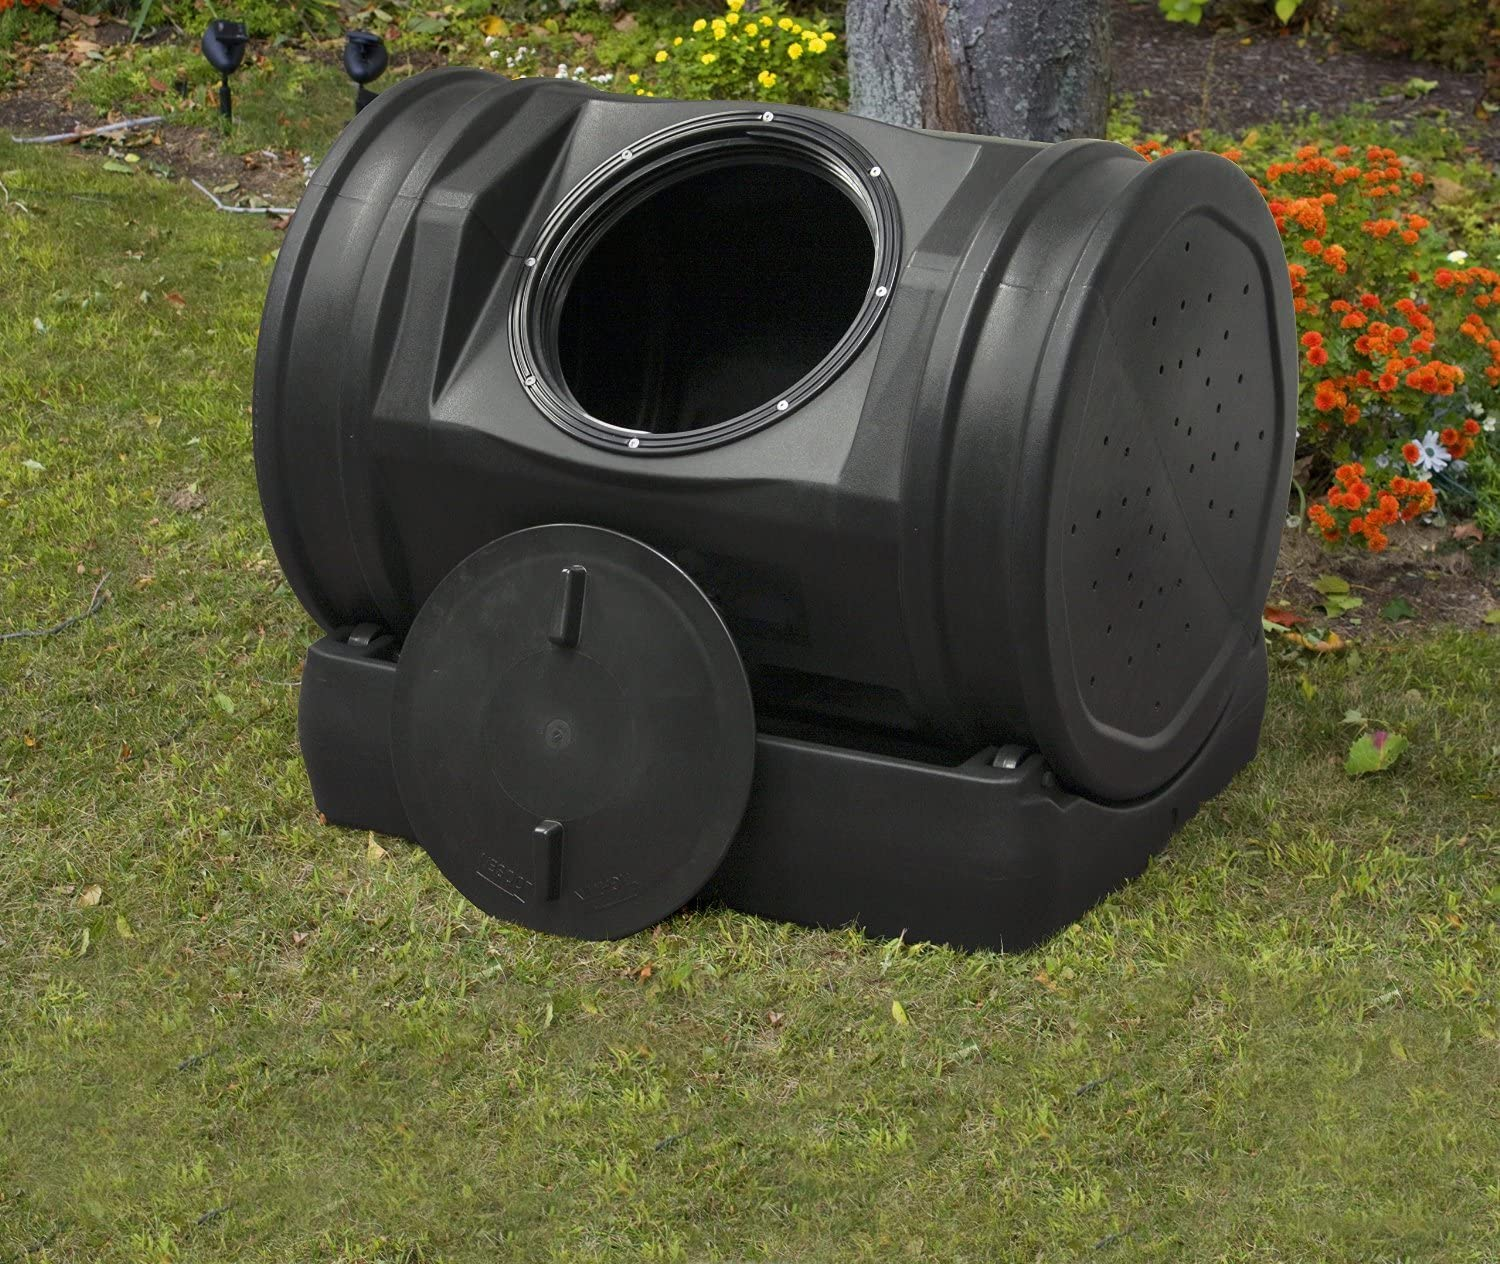 Hand turned compost tumbler on bed of grass.